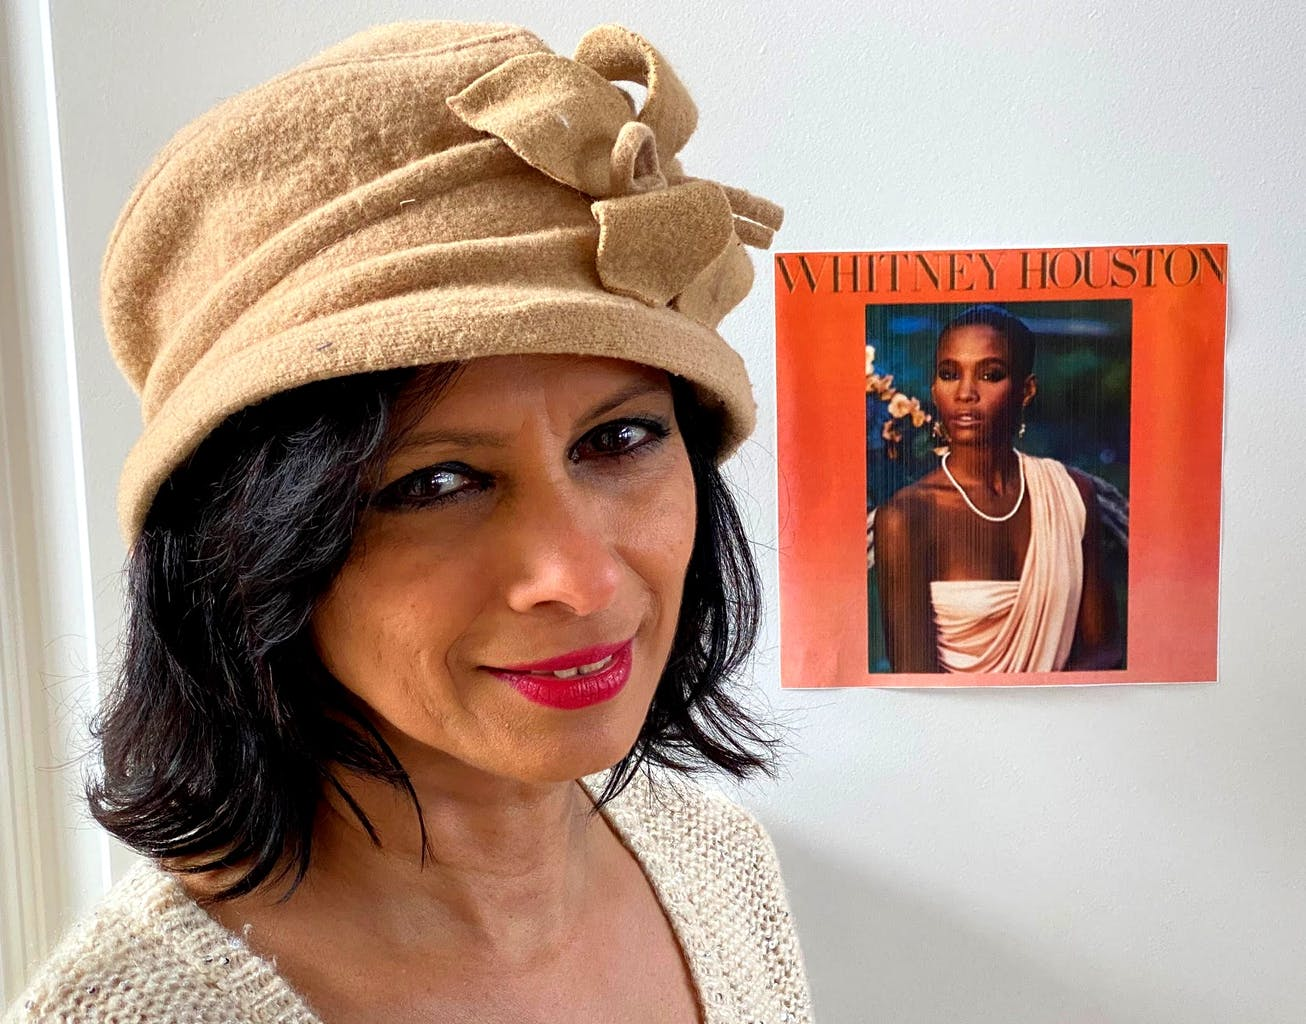 Seema Kumar for SEEMA, seema blog, seema.com, seema network, seema newsletter, Whitney Houston